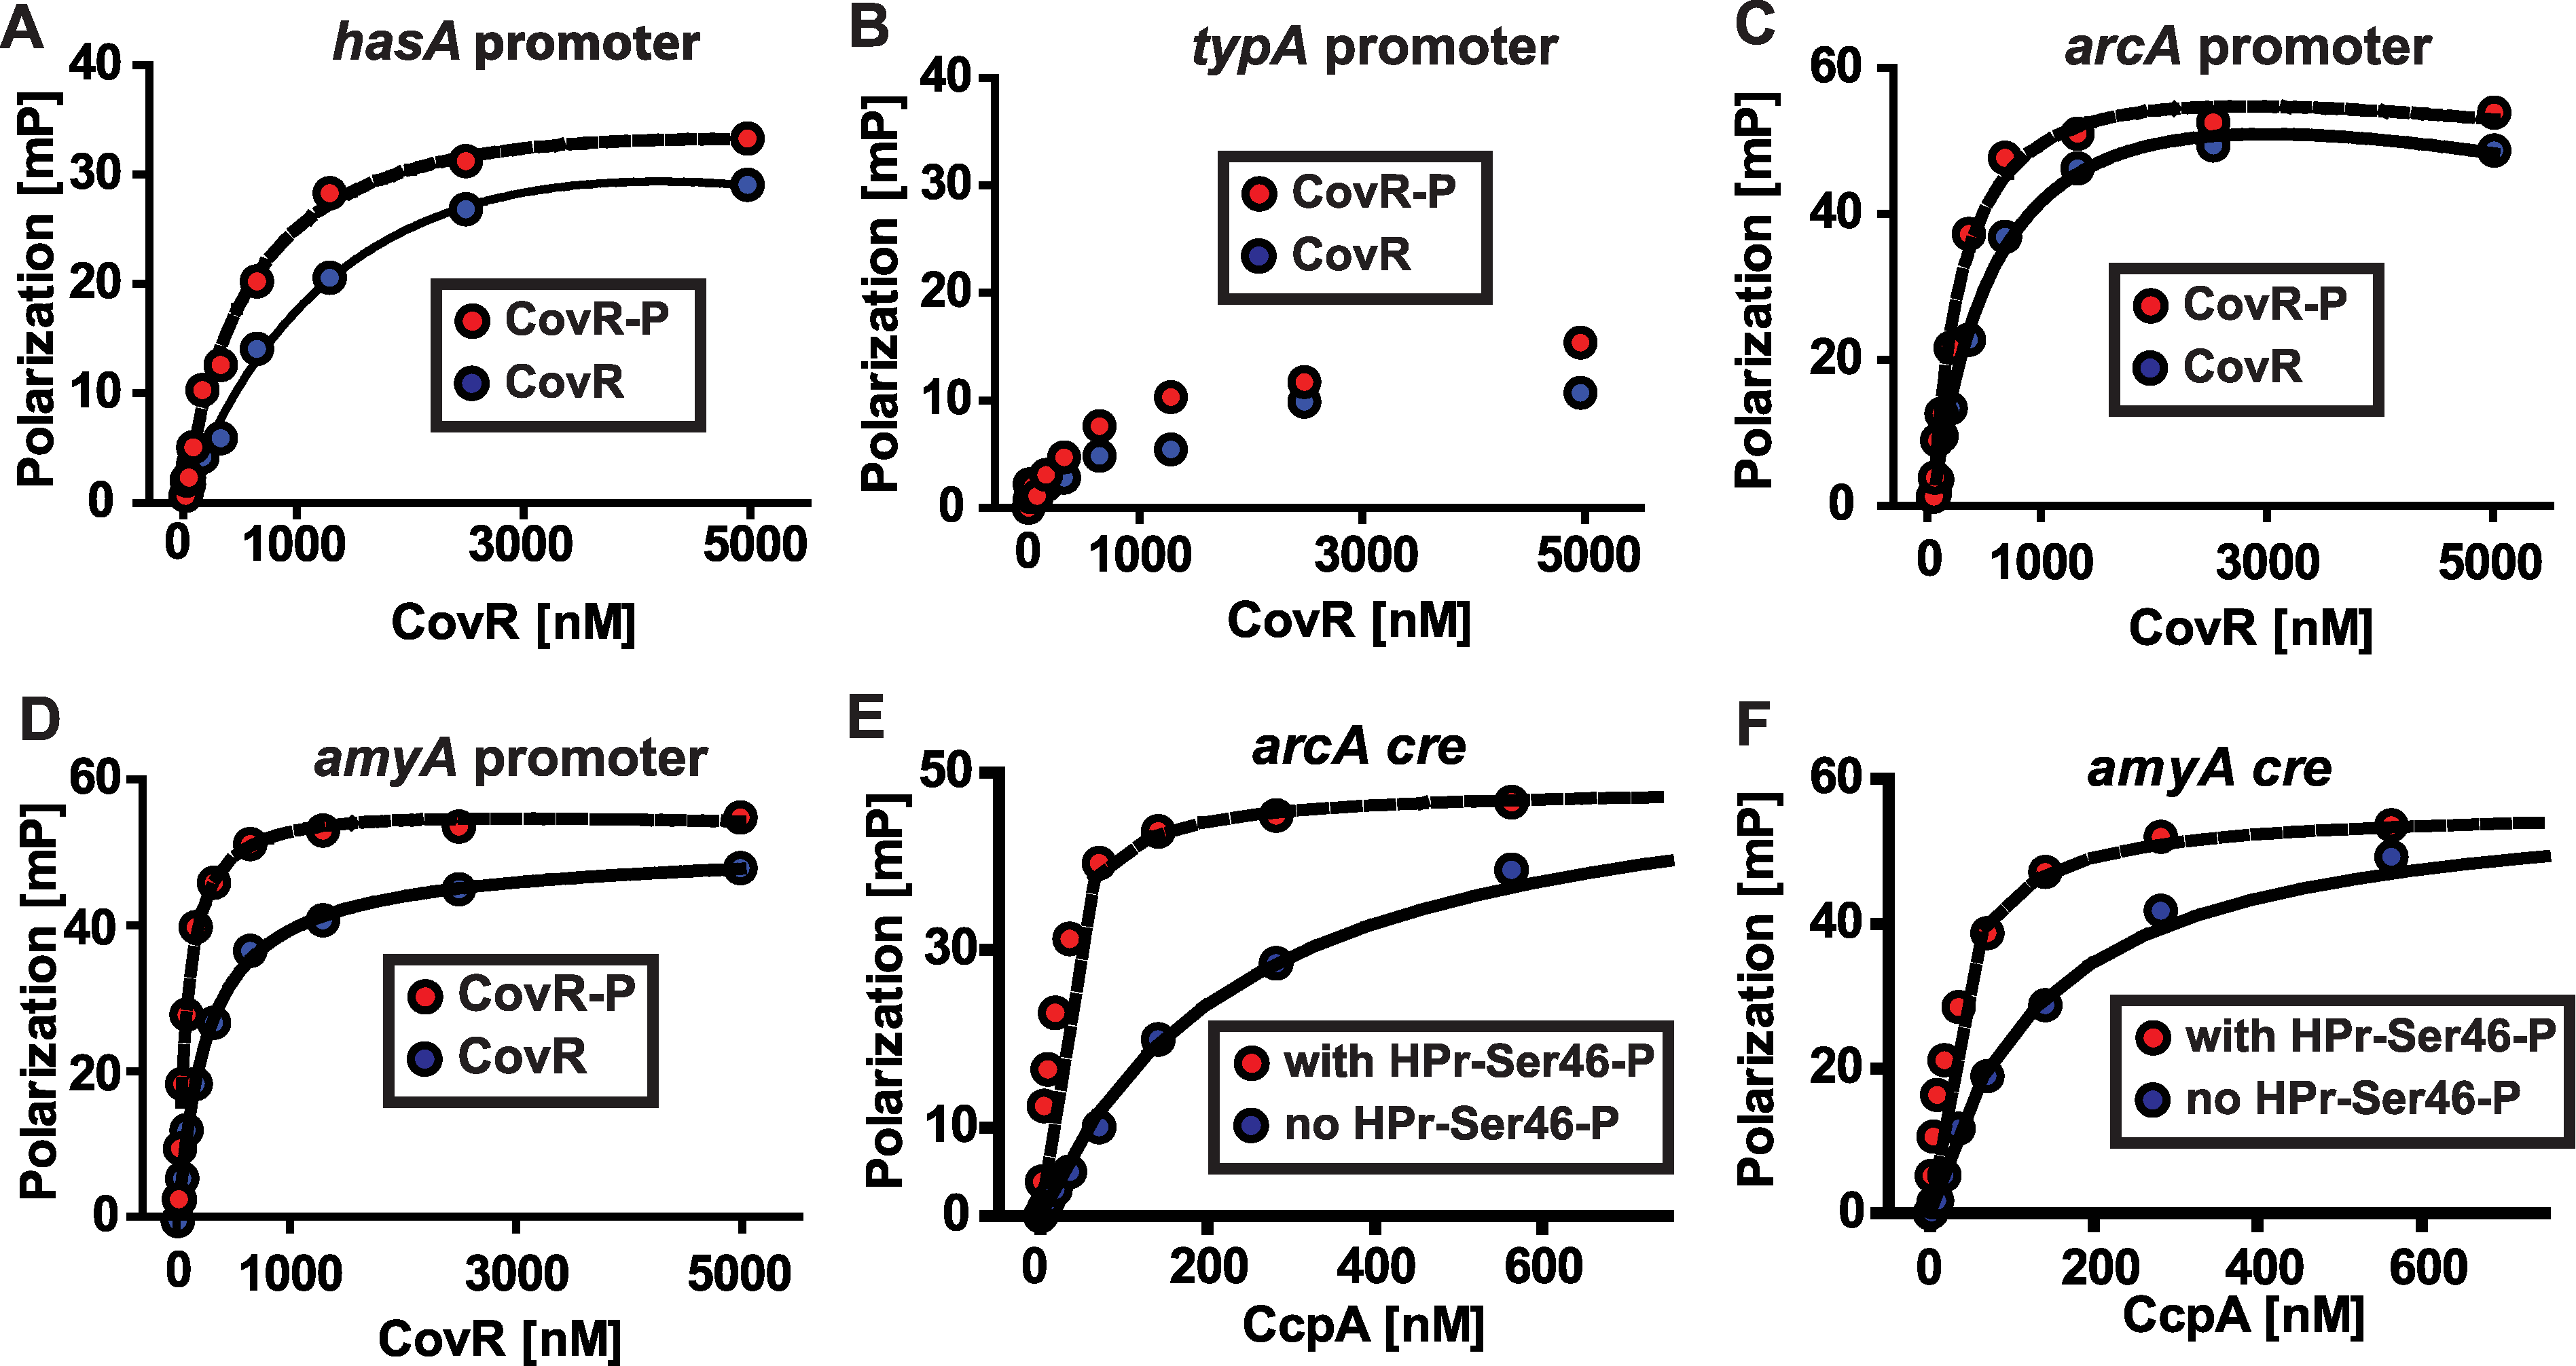 Recombinant CovR and CcpA bind to DNA from promoter regions of the same genes.